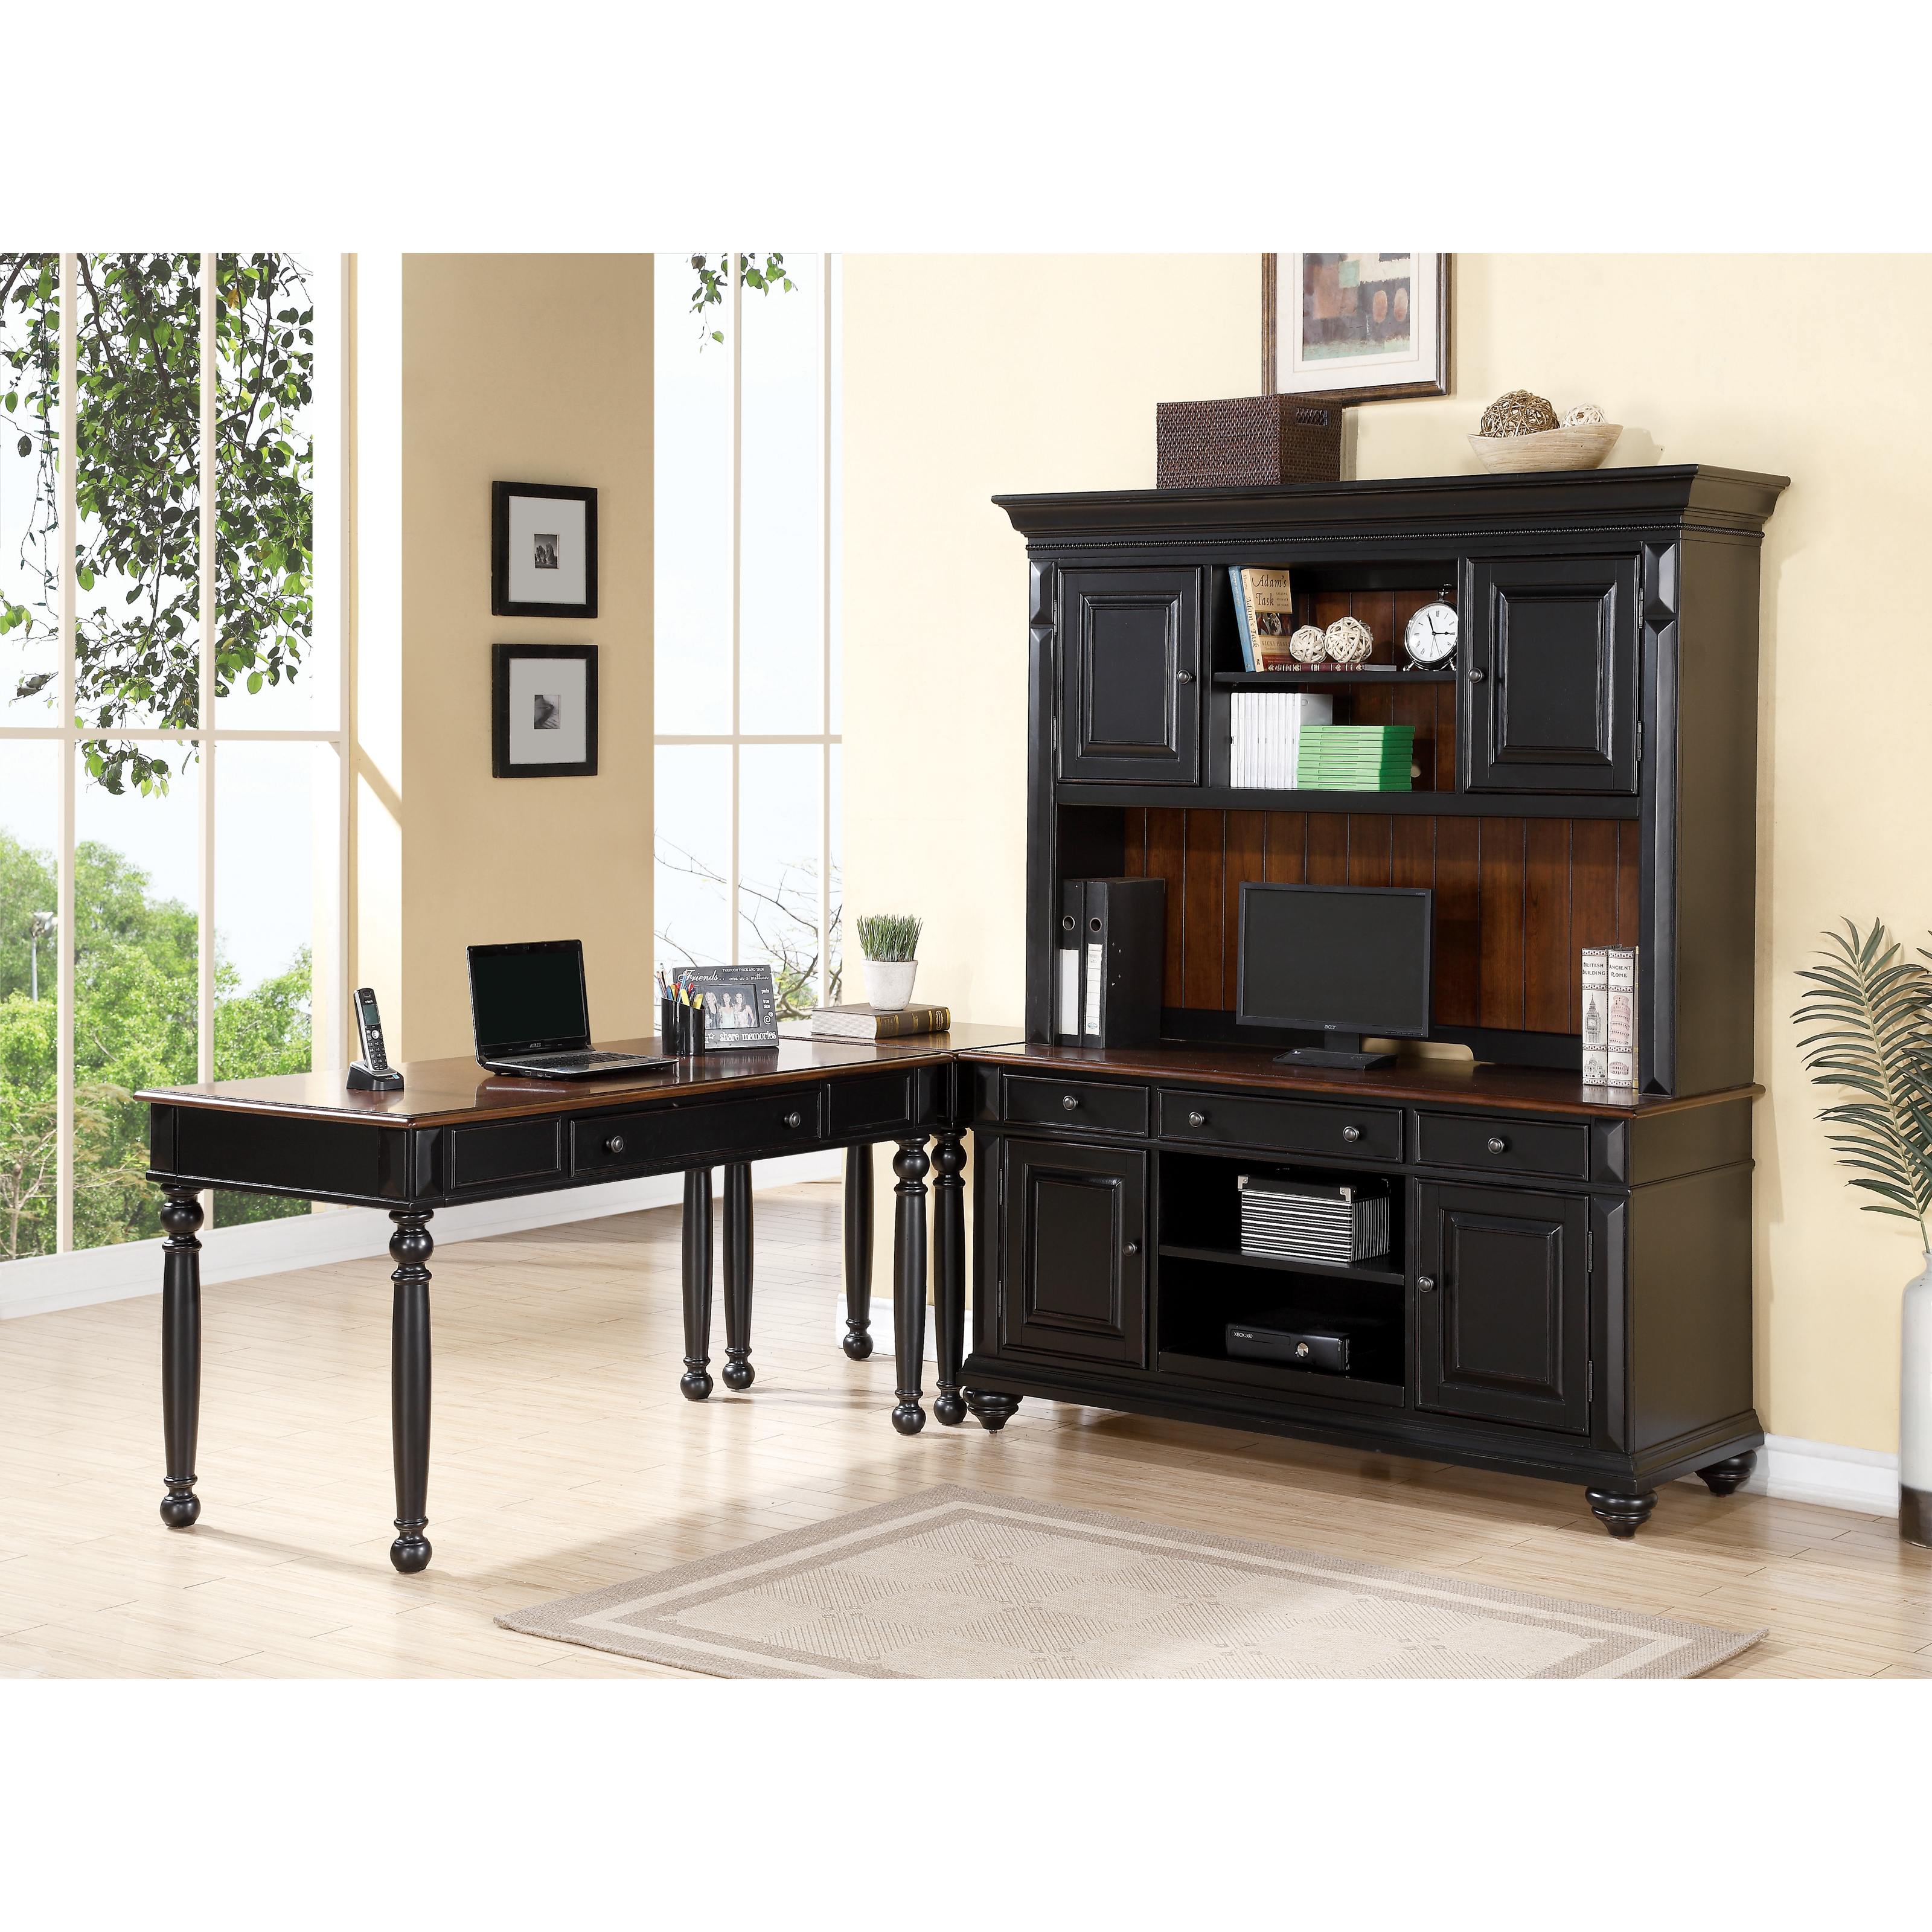 Richland L-Shaped Computer Desk with Optional Hutch at Hayneedle